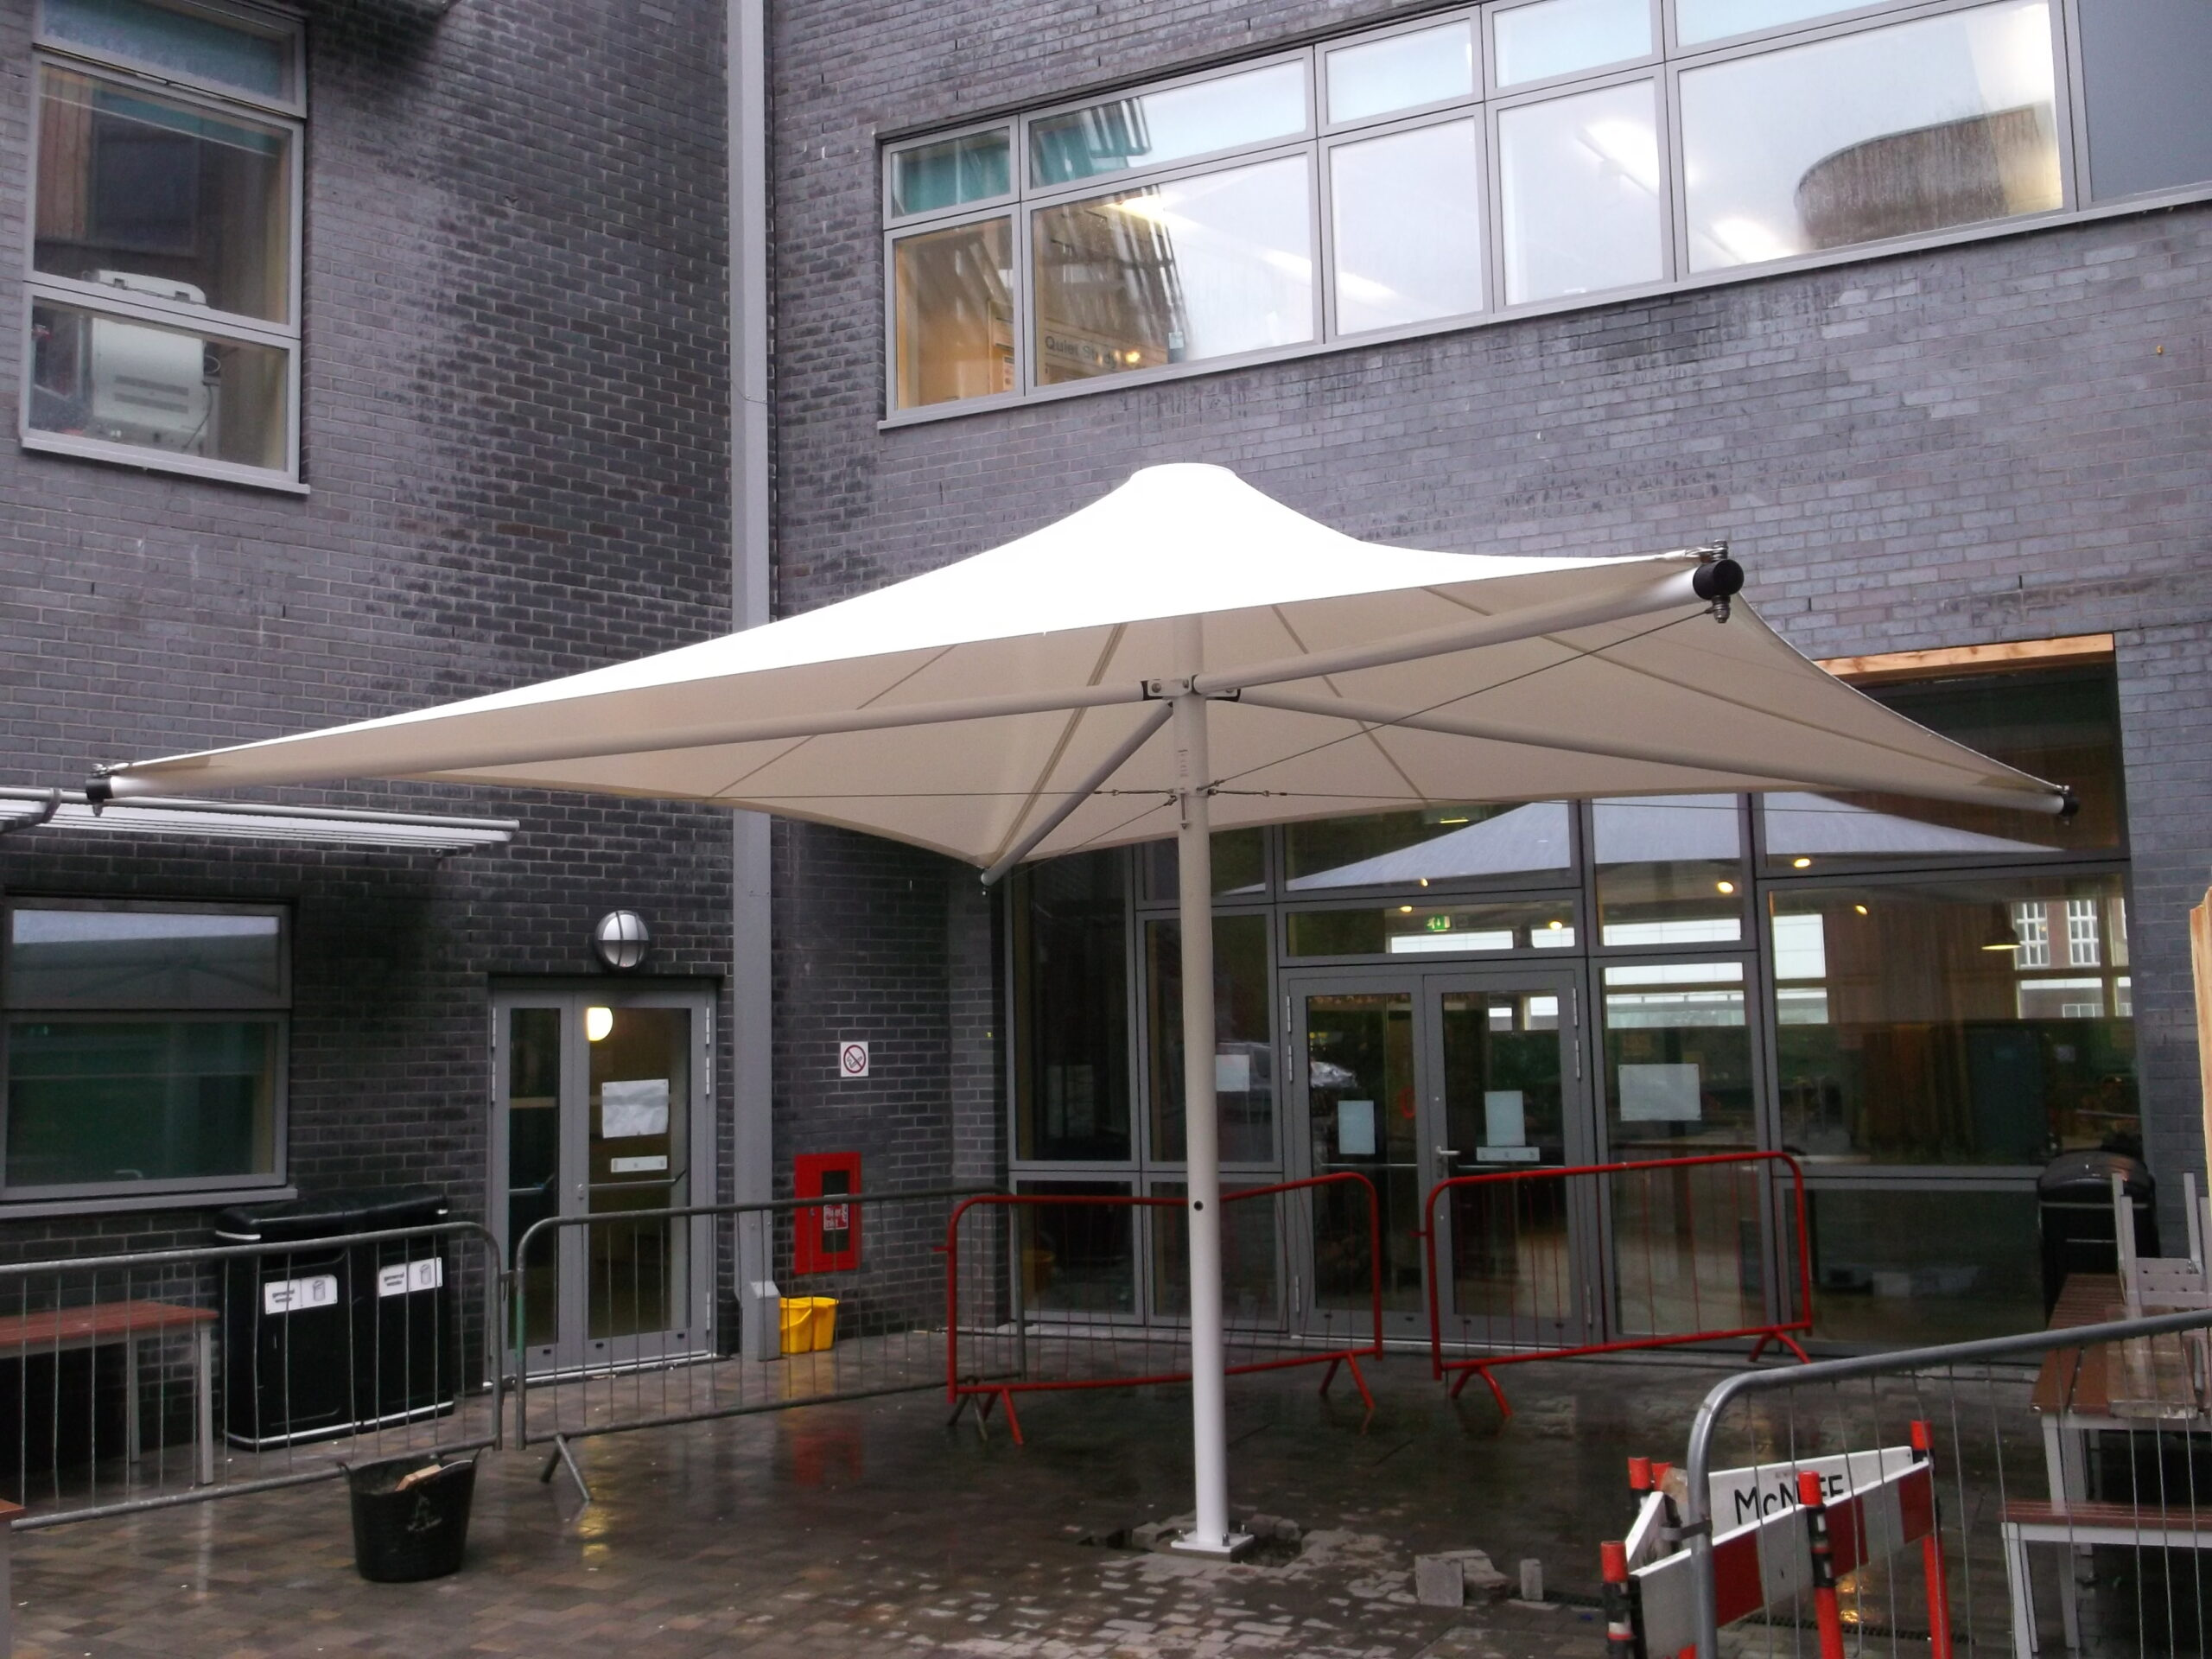 Ebbw Vale Learning Zone